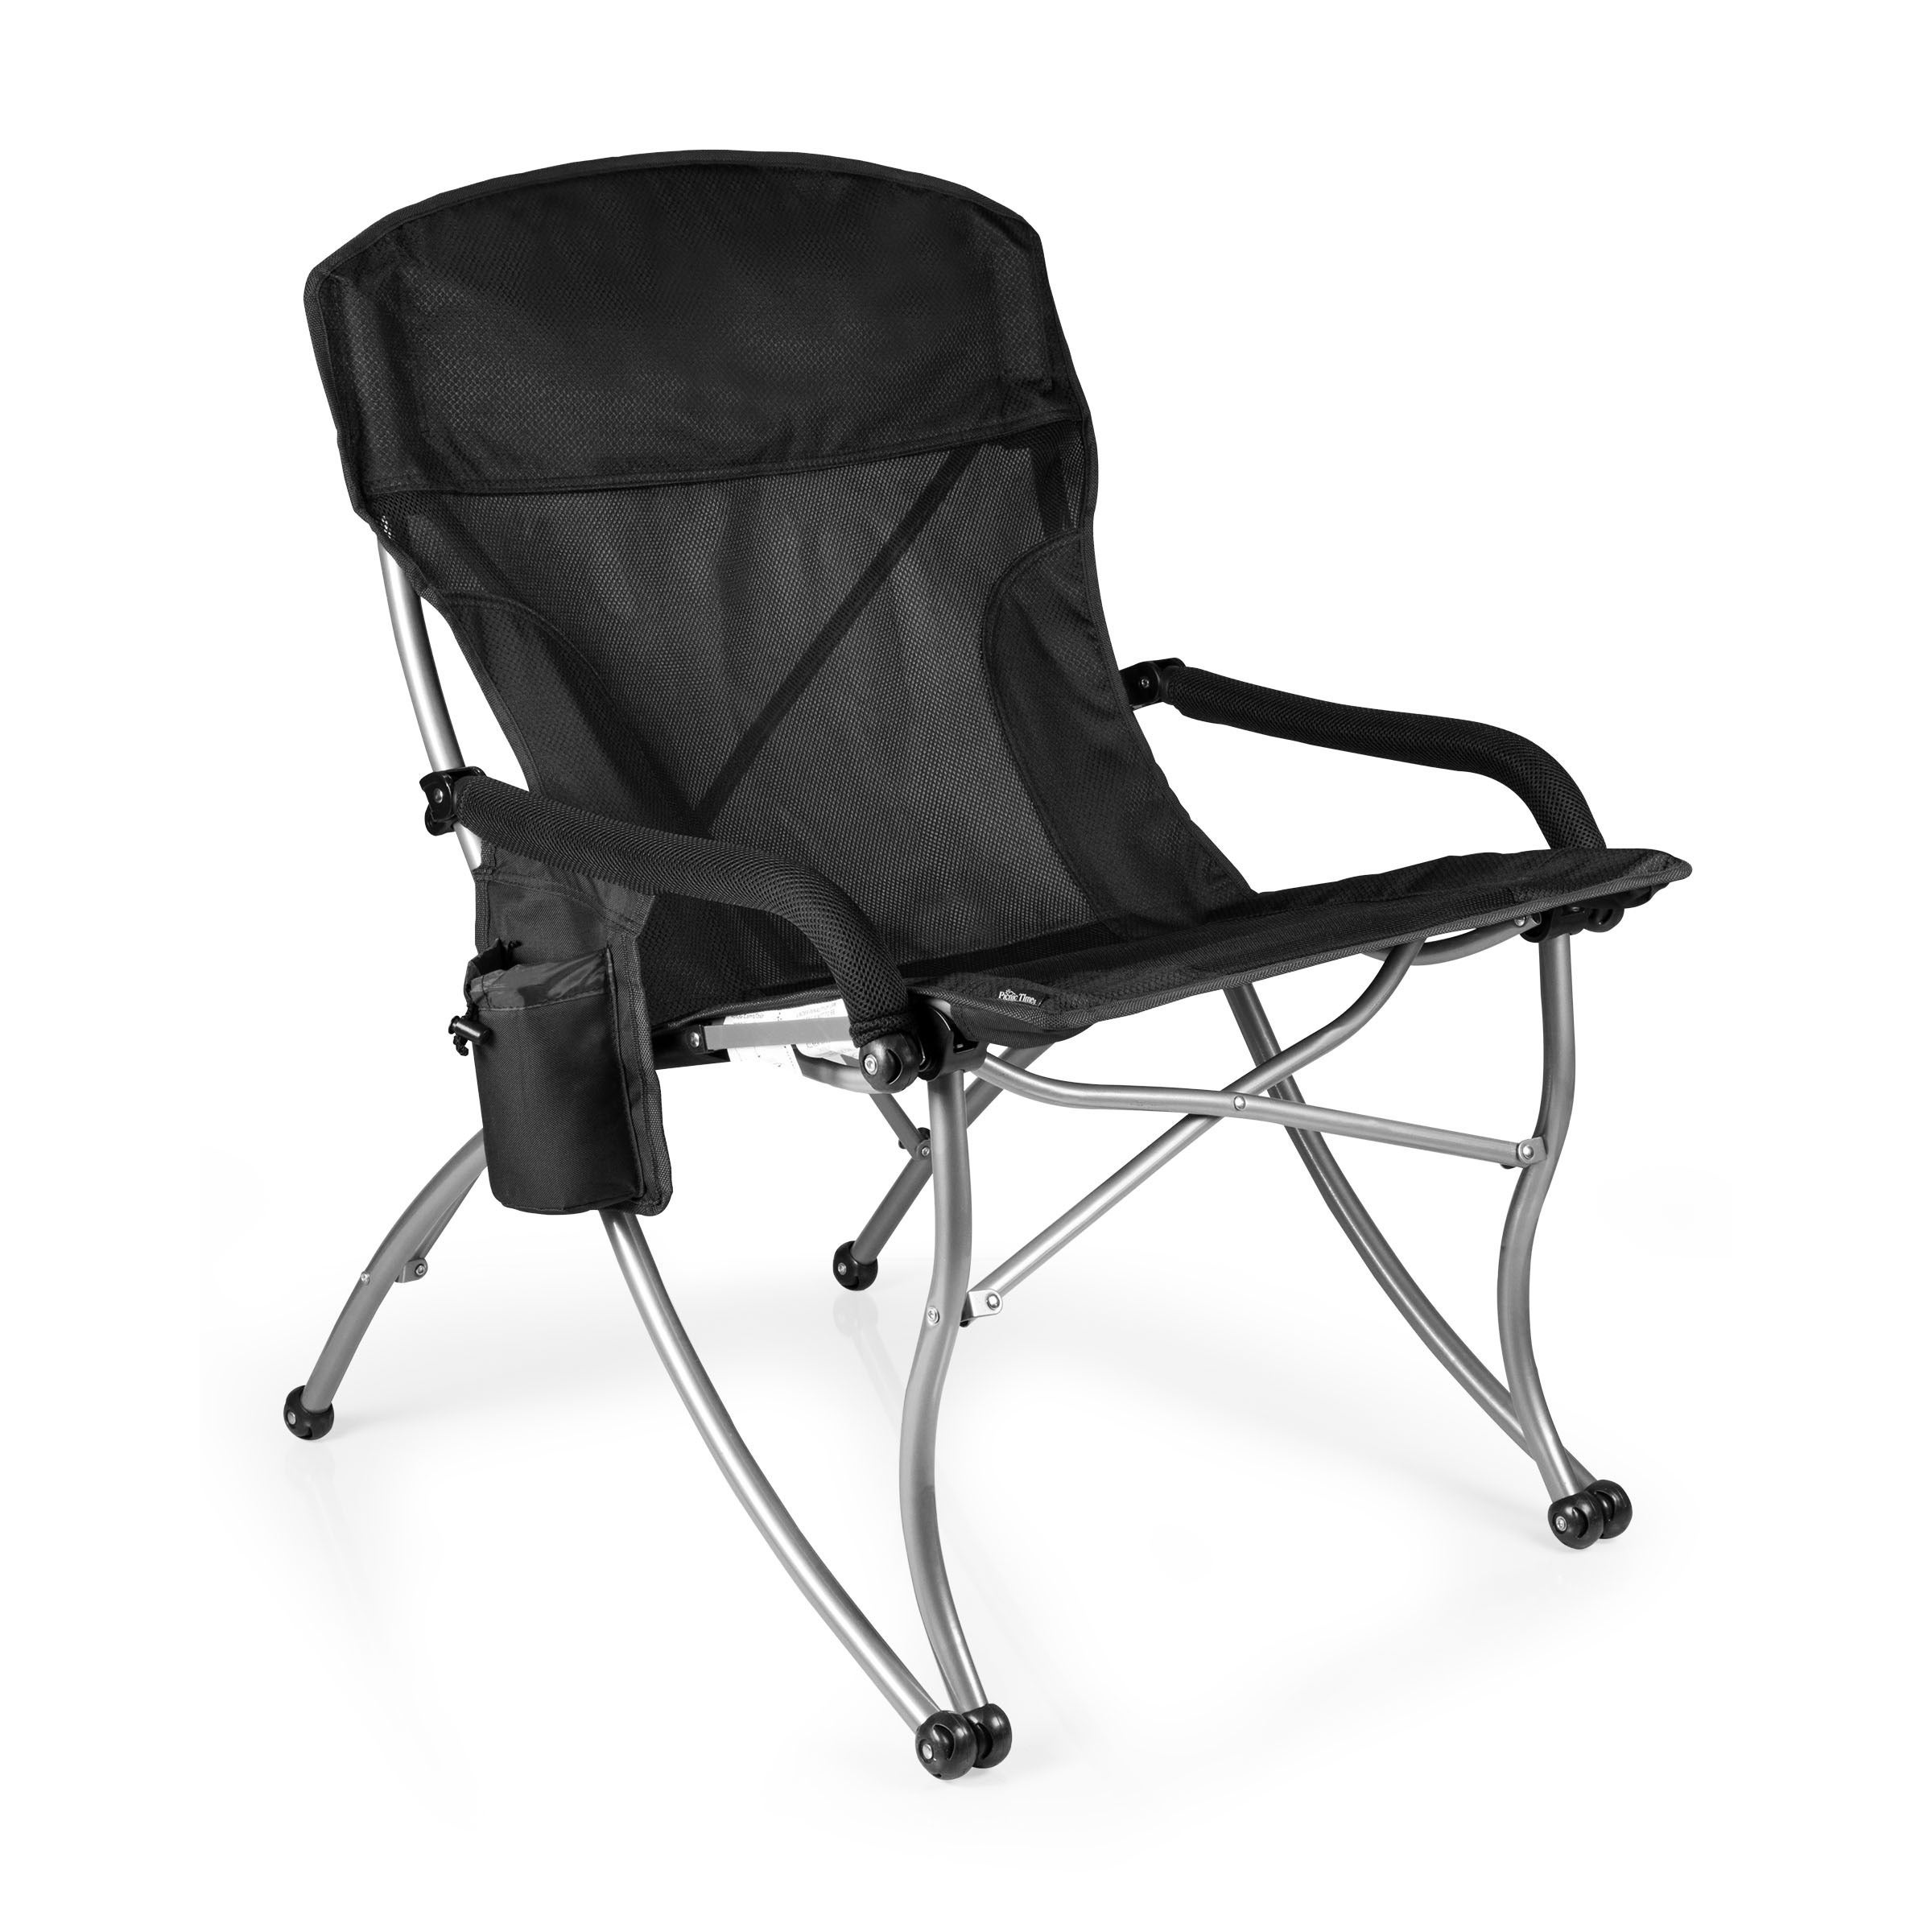 Picnic Time PT XL Camp Chair Free Shipping Today Overstock